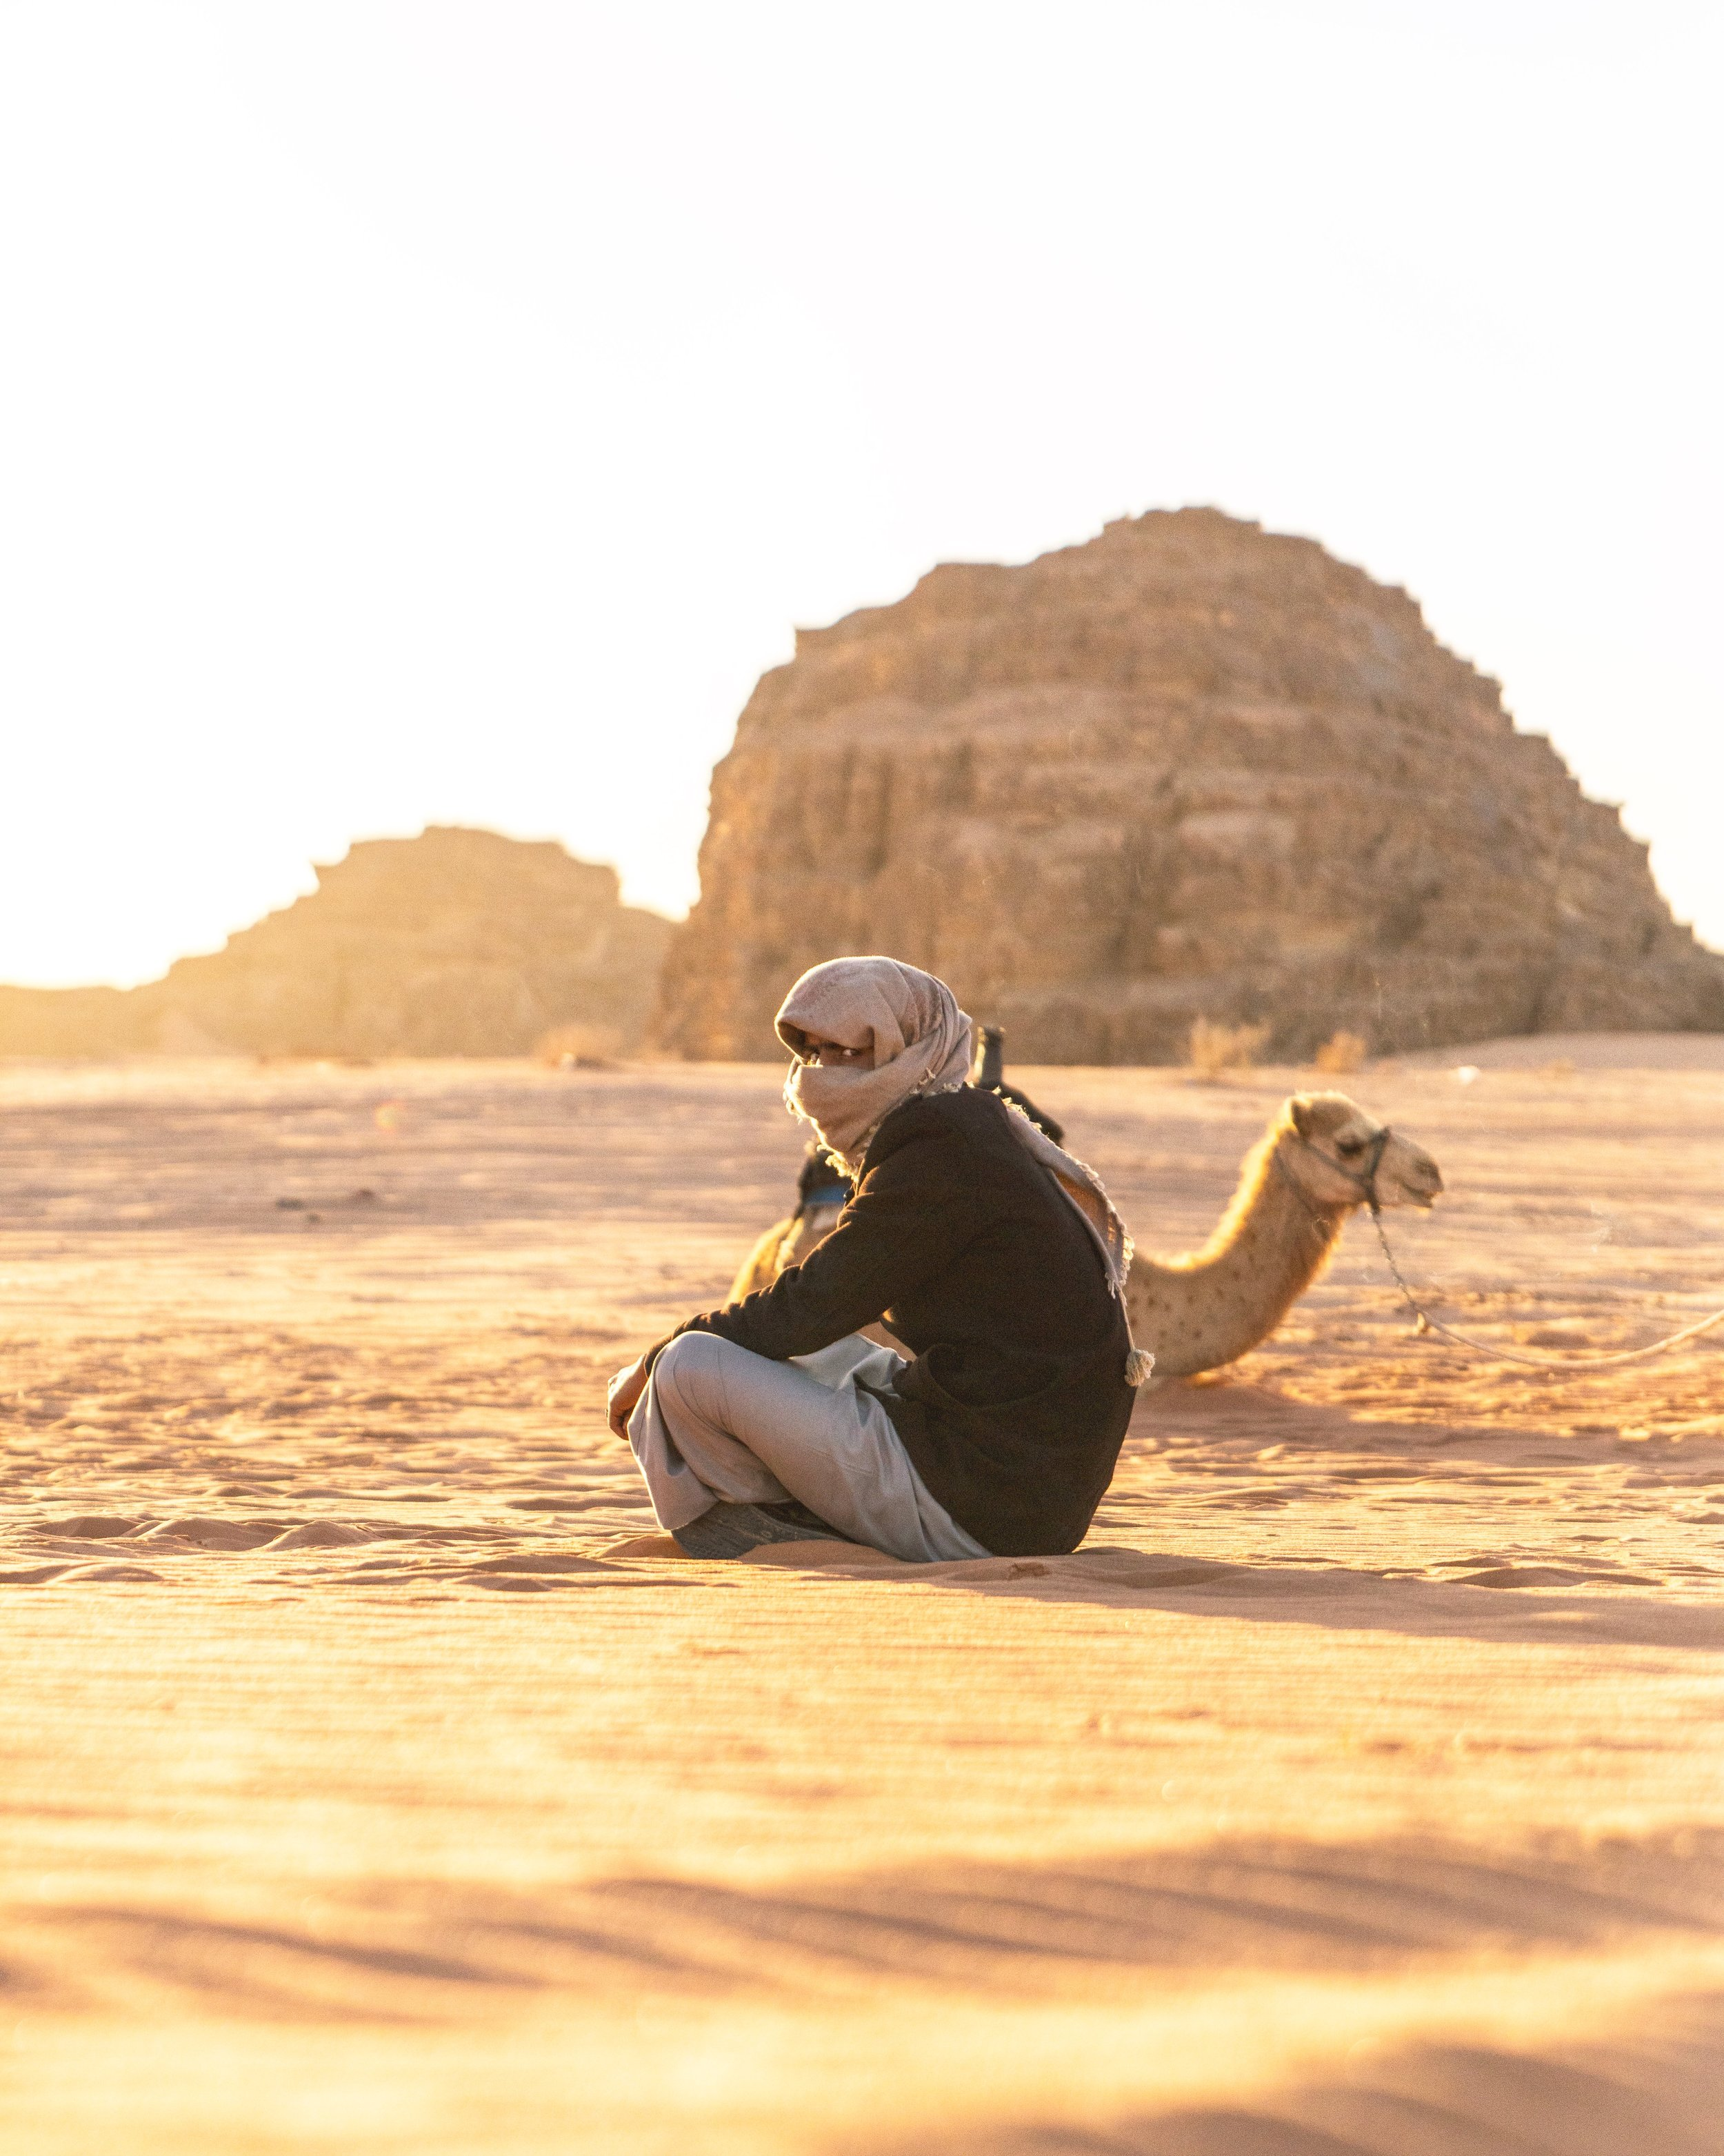 WE SPENT TIME WITH THE WADI RUM BEDOIUNS